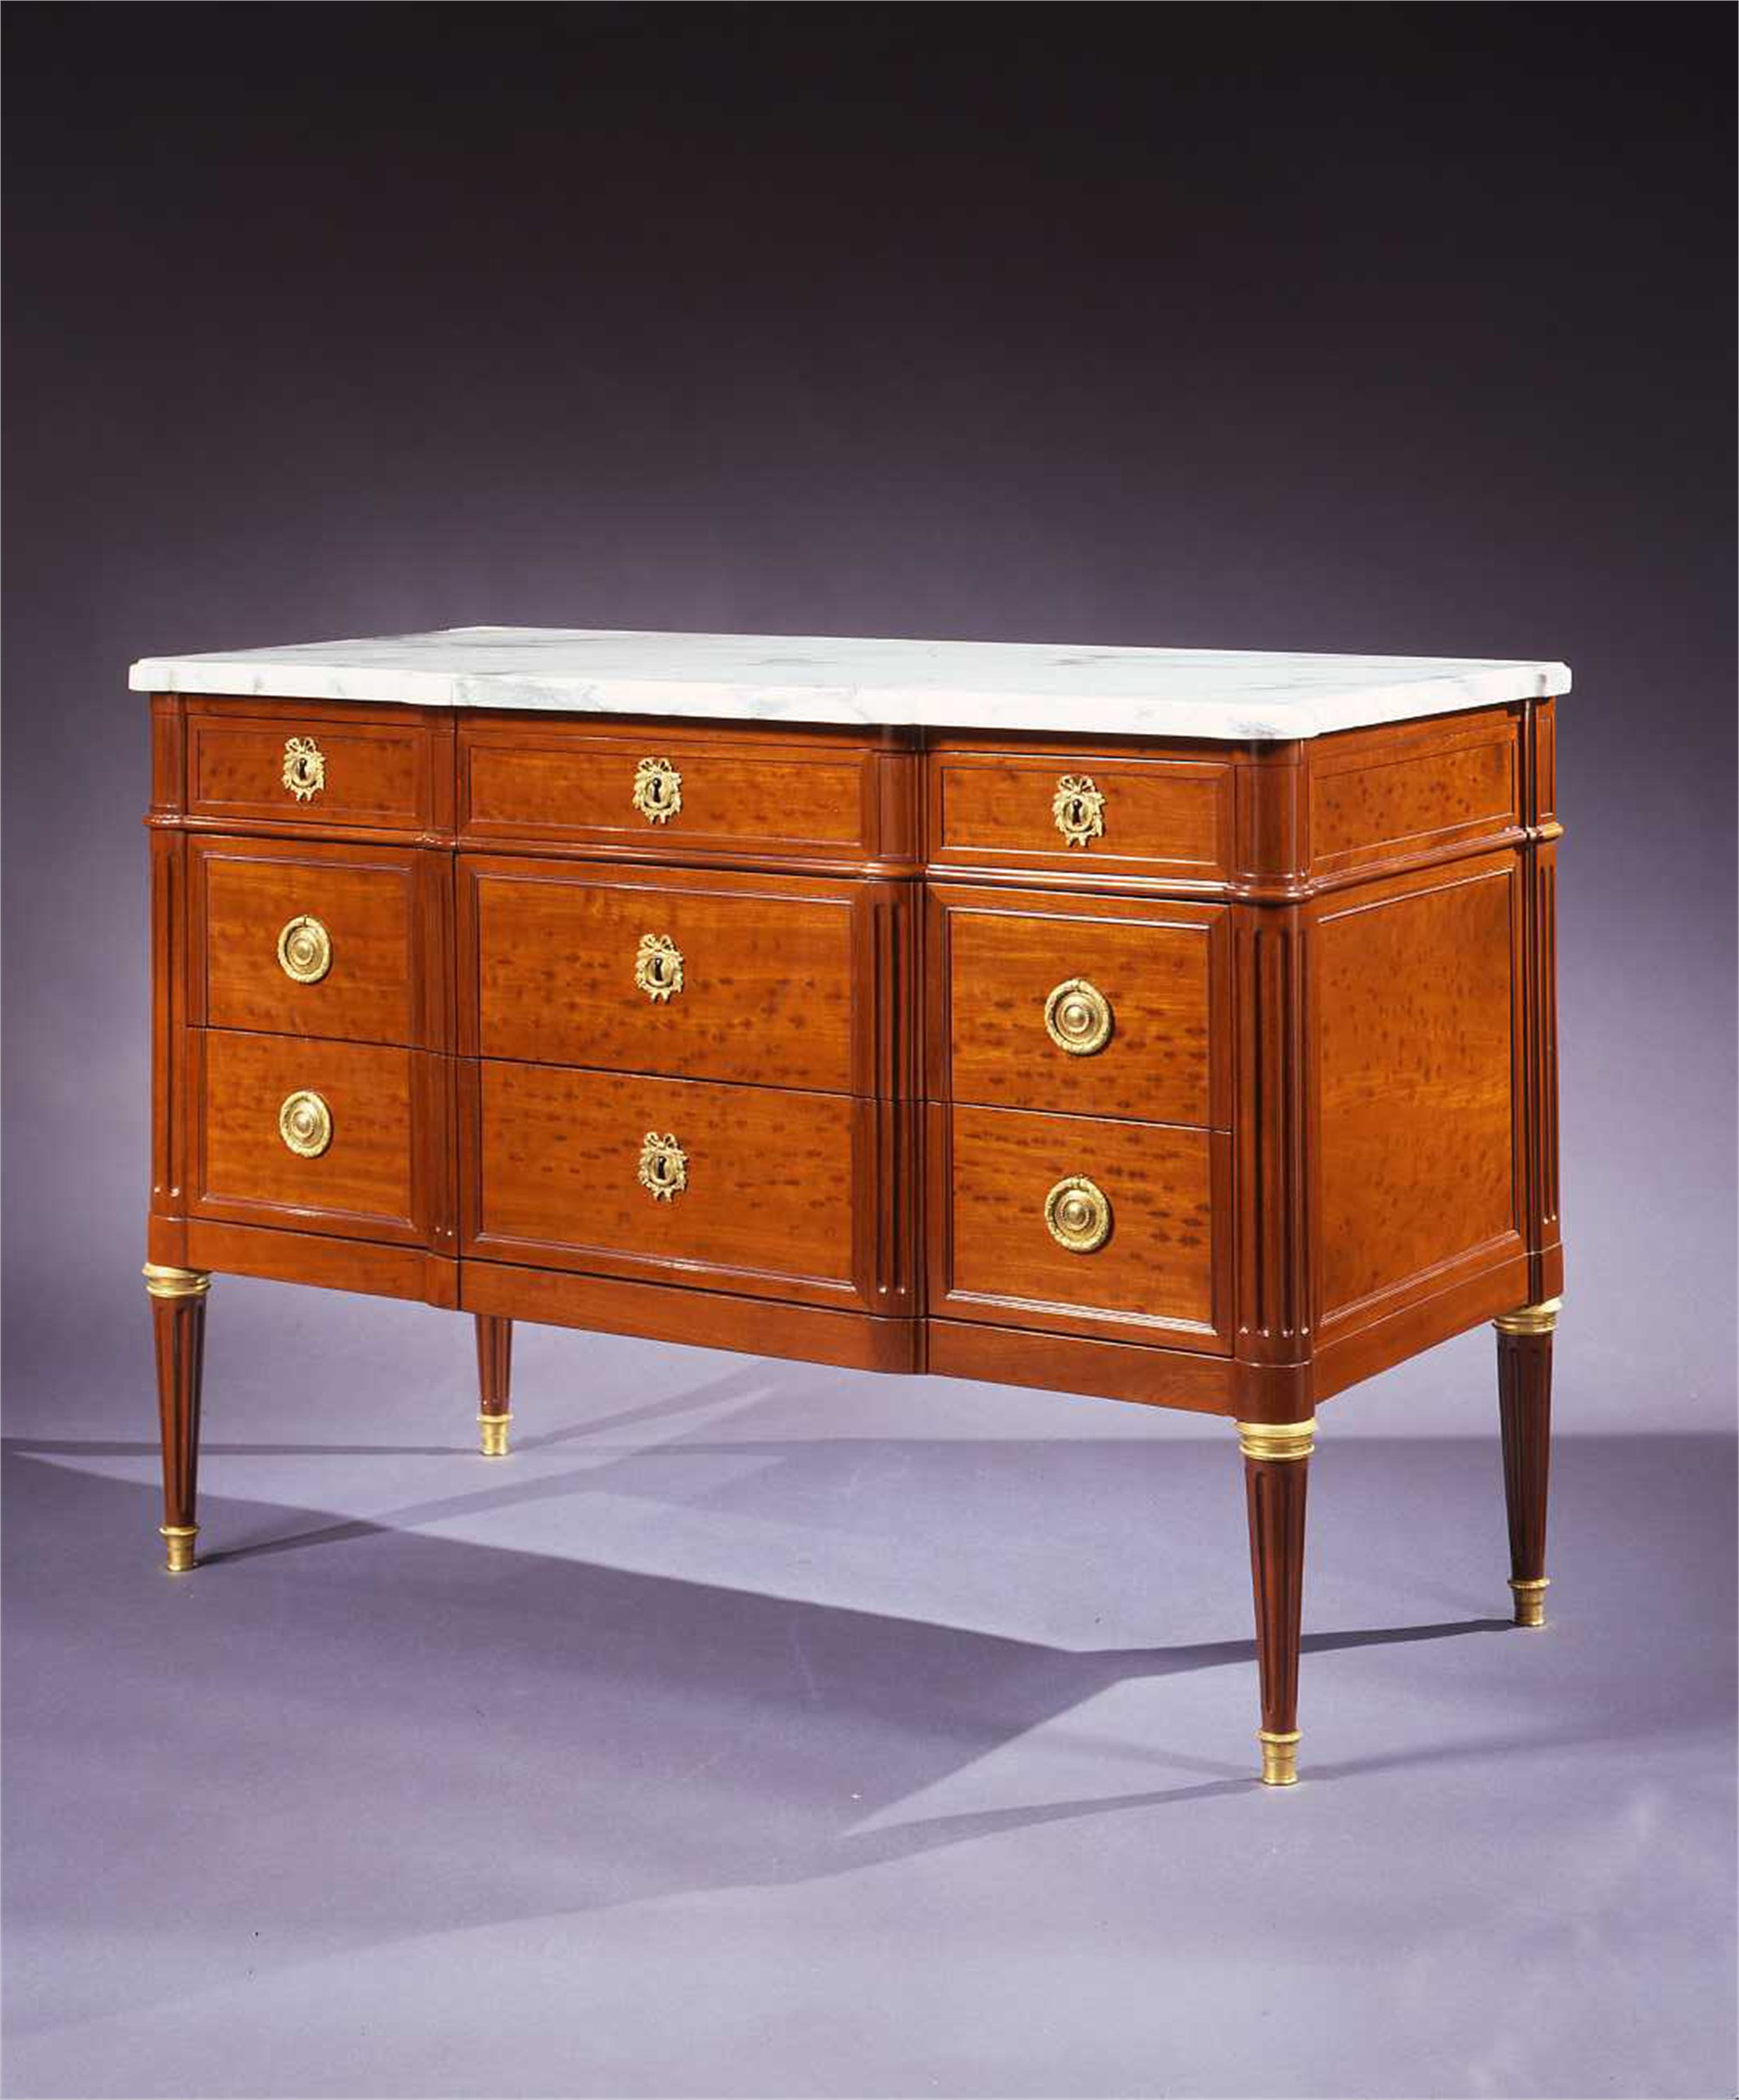 LOUIS XVI MAHOGANY COMMODE STAMPED STOCKEL by J. Stockel